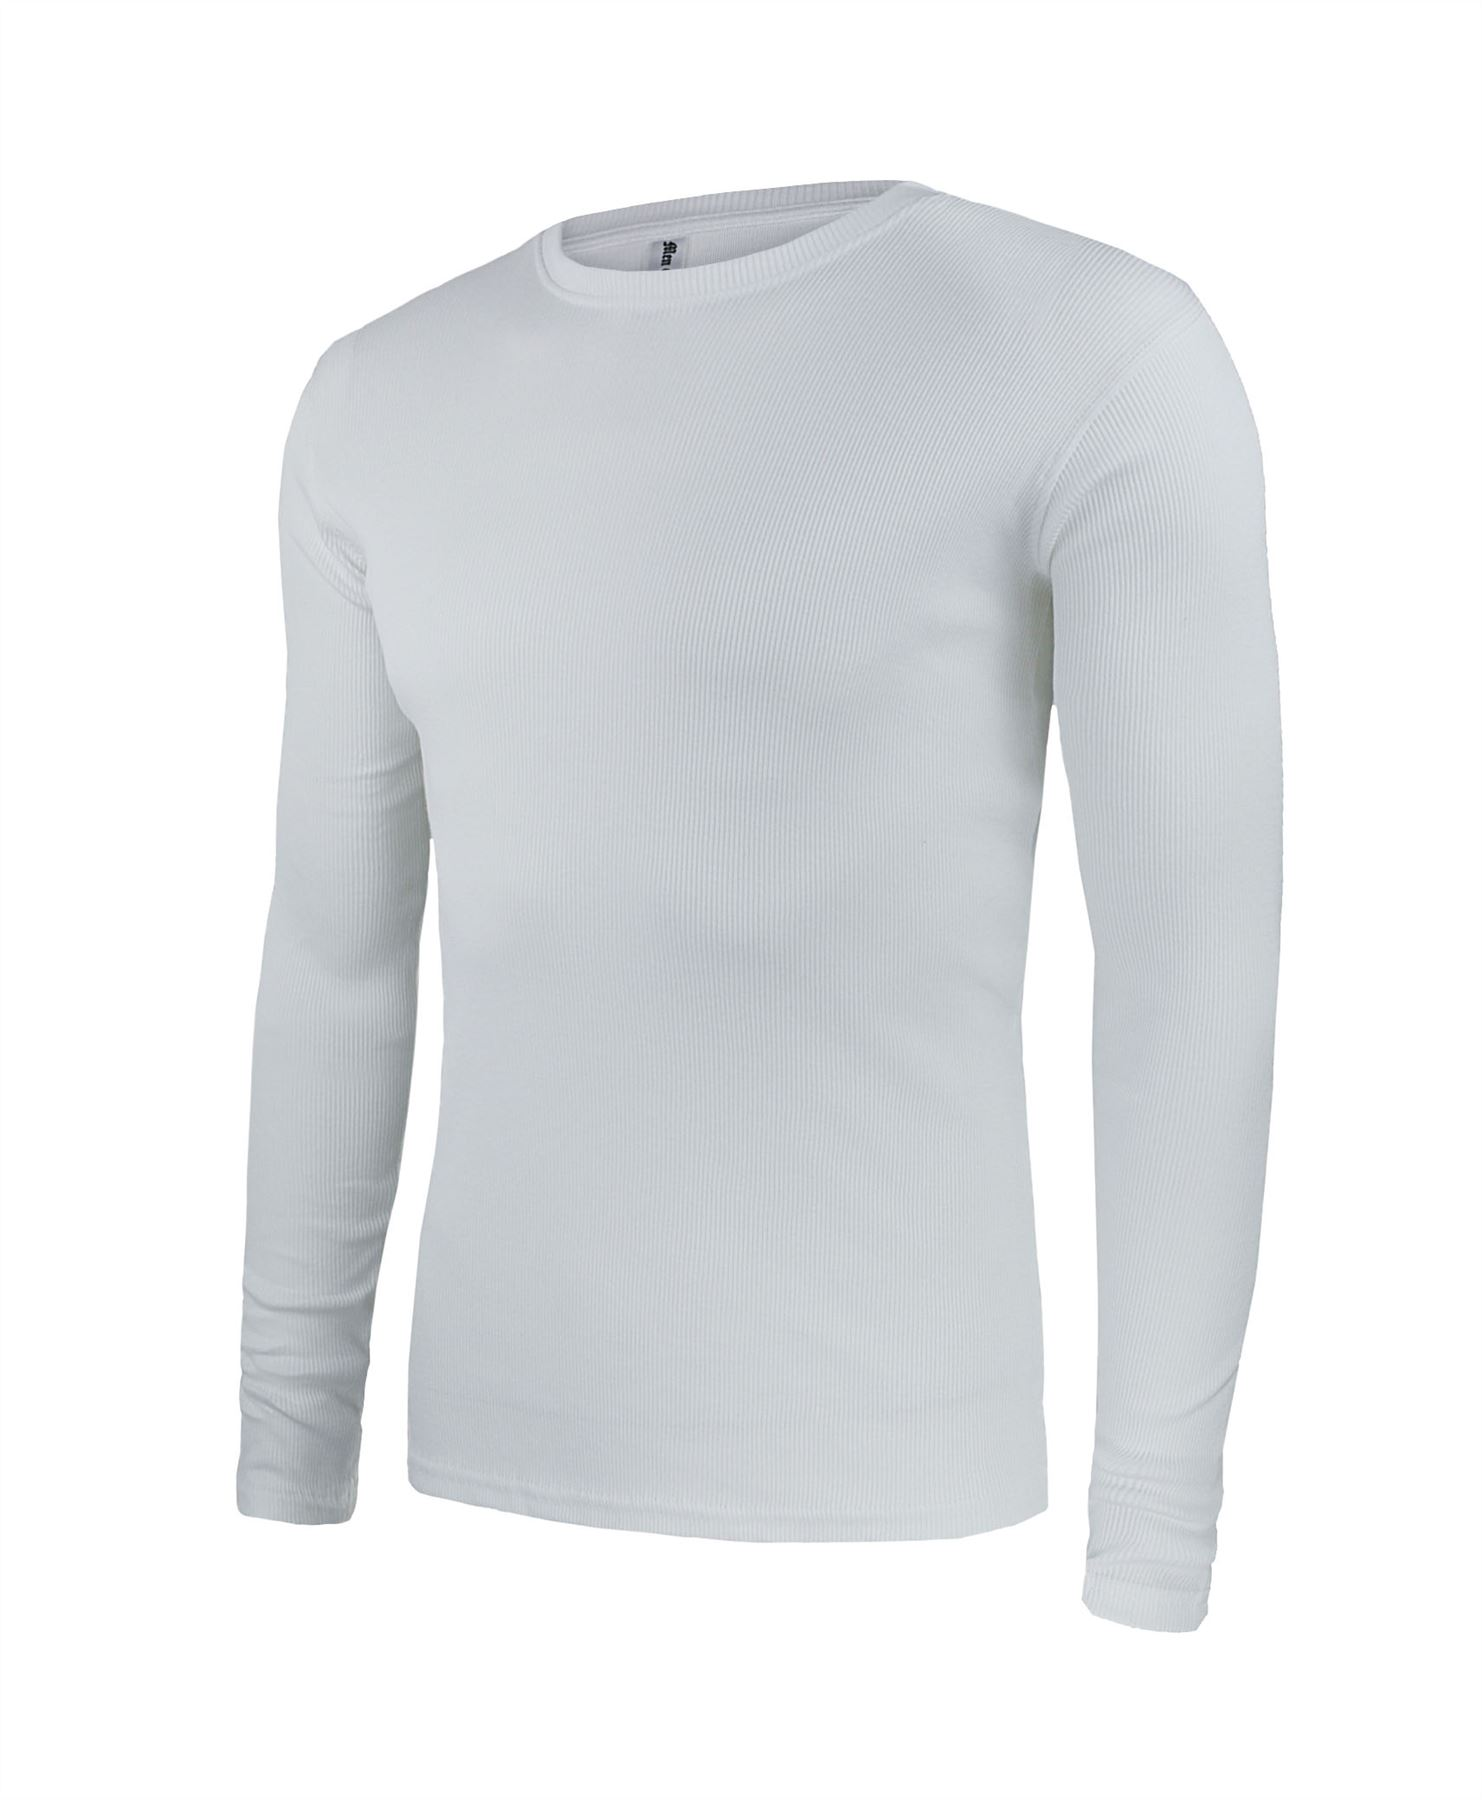 39f3e0cec Find mens long sleeve ribbed t shirt at ShopStyle. Shop the latest  collection of mens